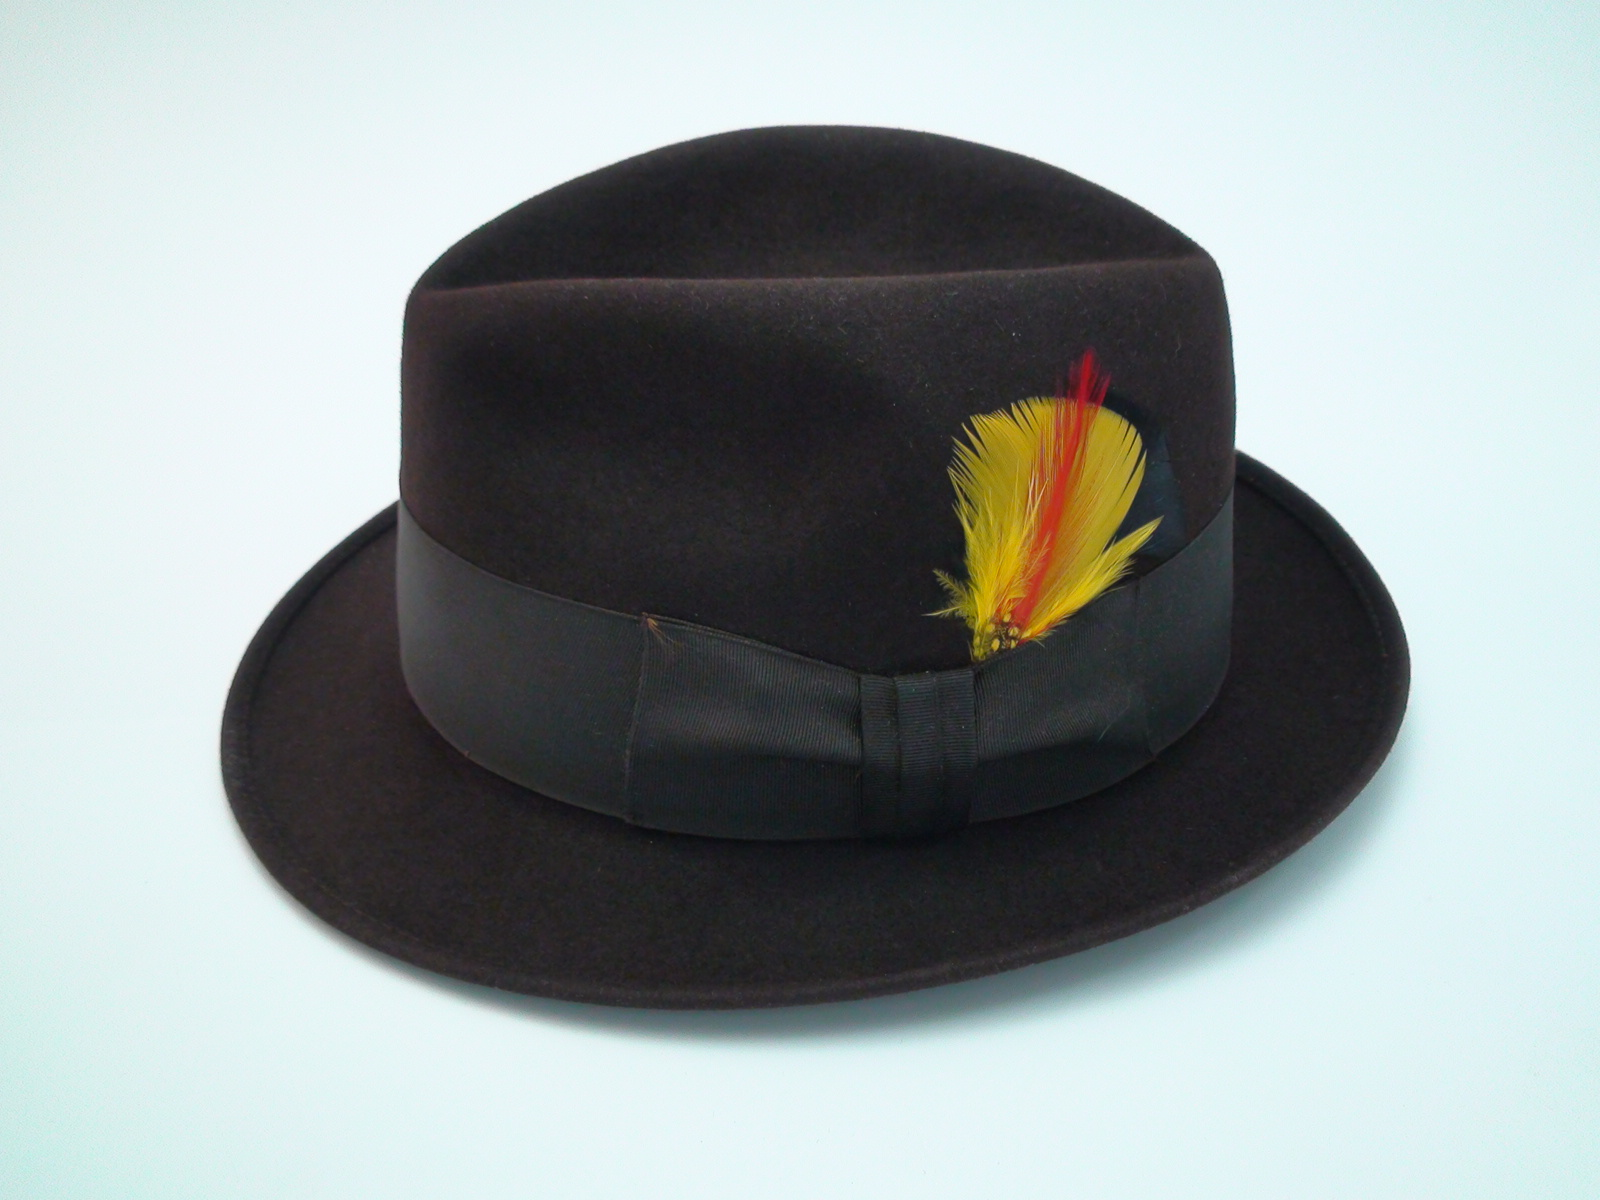 Royal Stetson Fedora Dark Brown Fur Felt Hat 8cab664d225